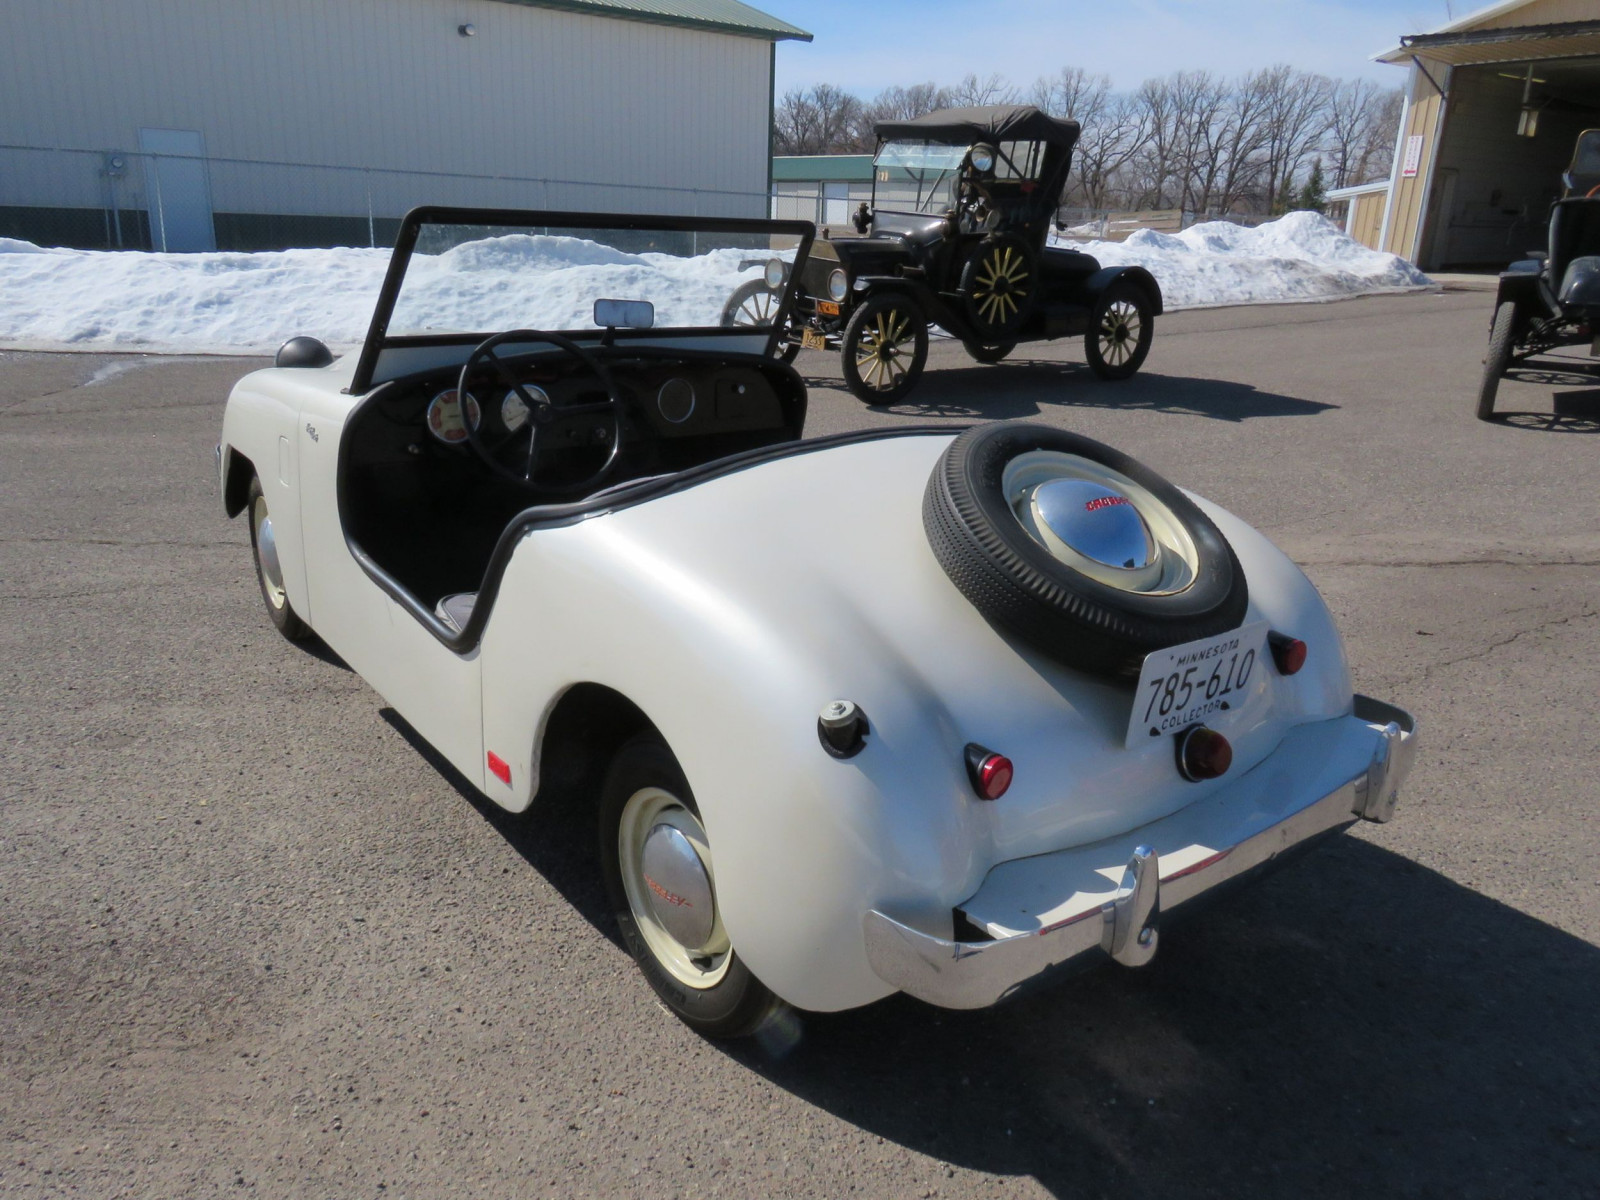 1950 Crosley Hot Shot Roadster - Image 5